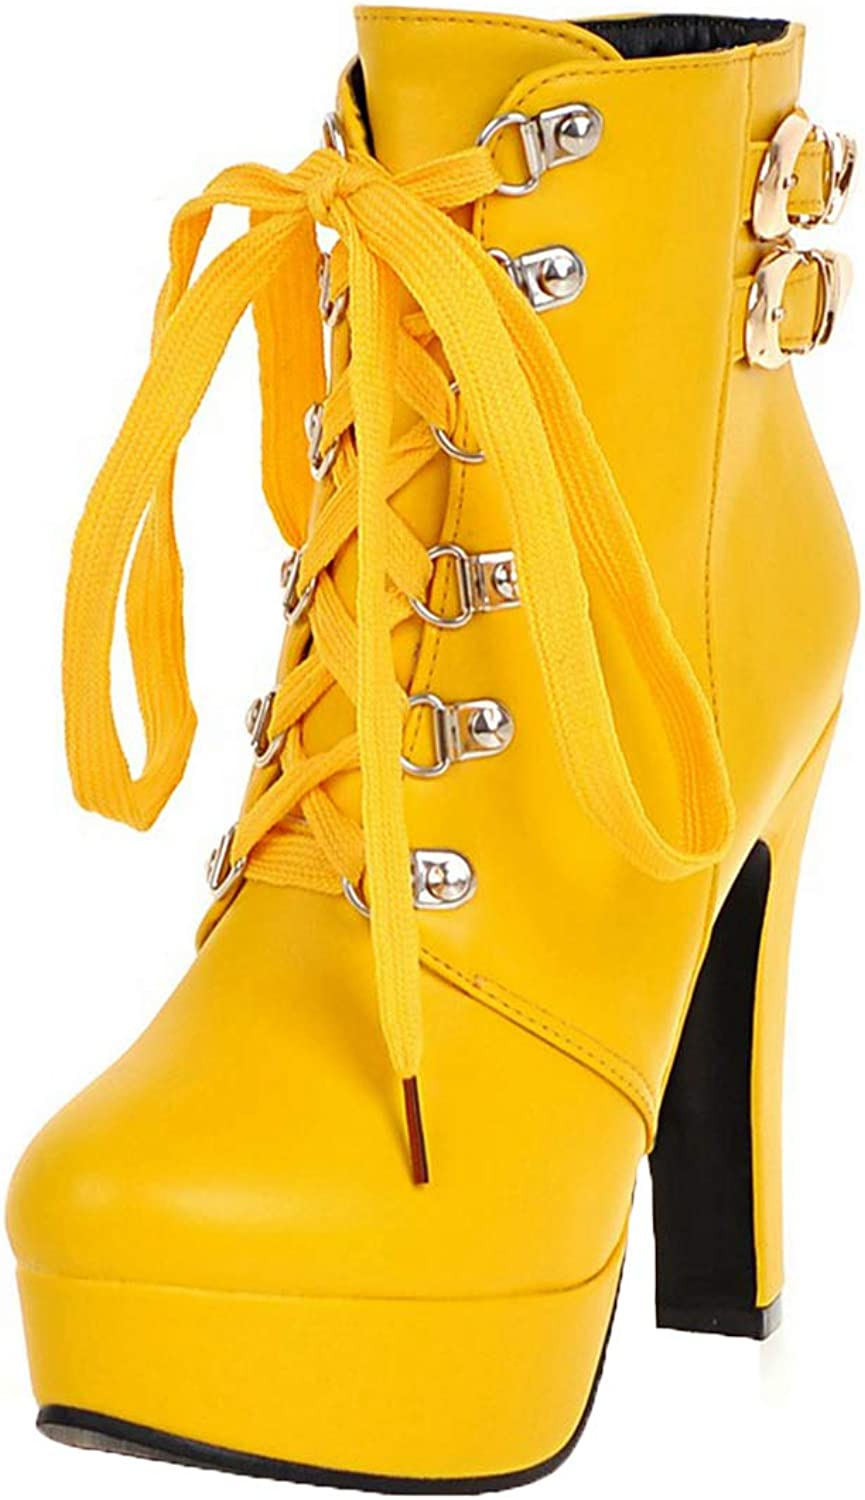 Vitalo Womens Platform High Heel Lace Up Ankle Boots Dress Short Booties Size 4.5 B(M) US,3 Yellow